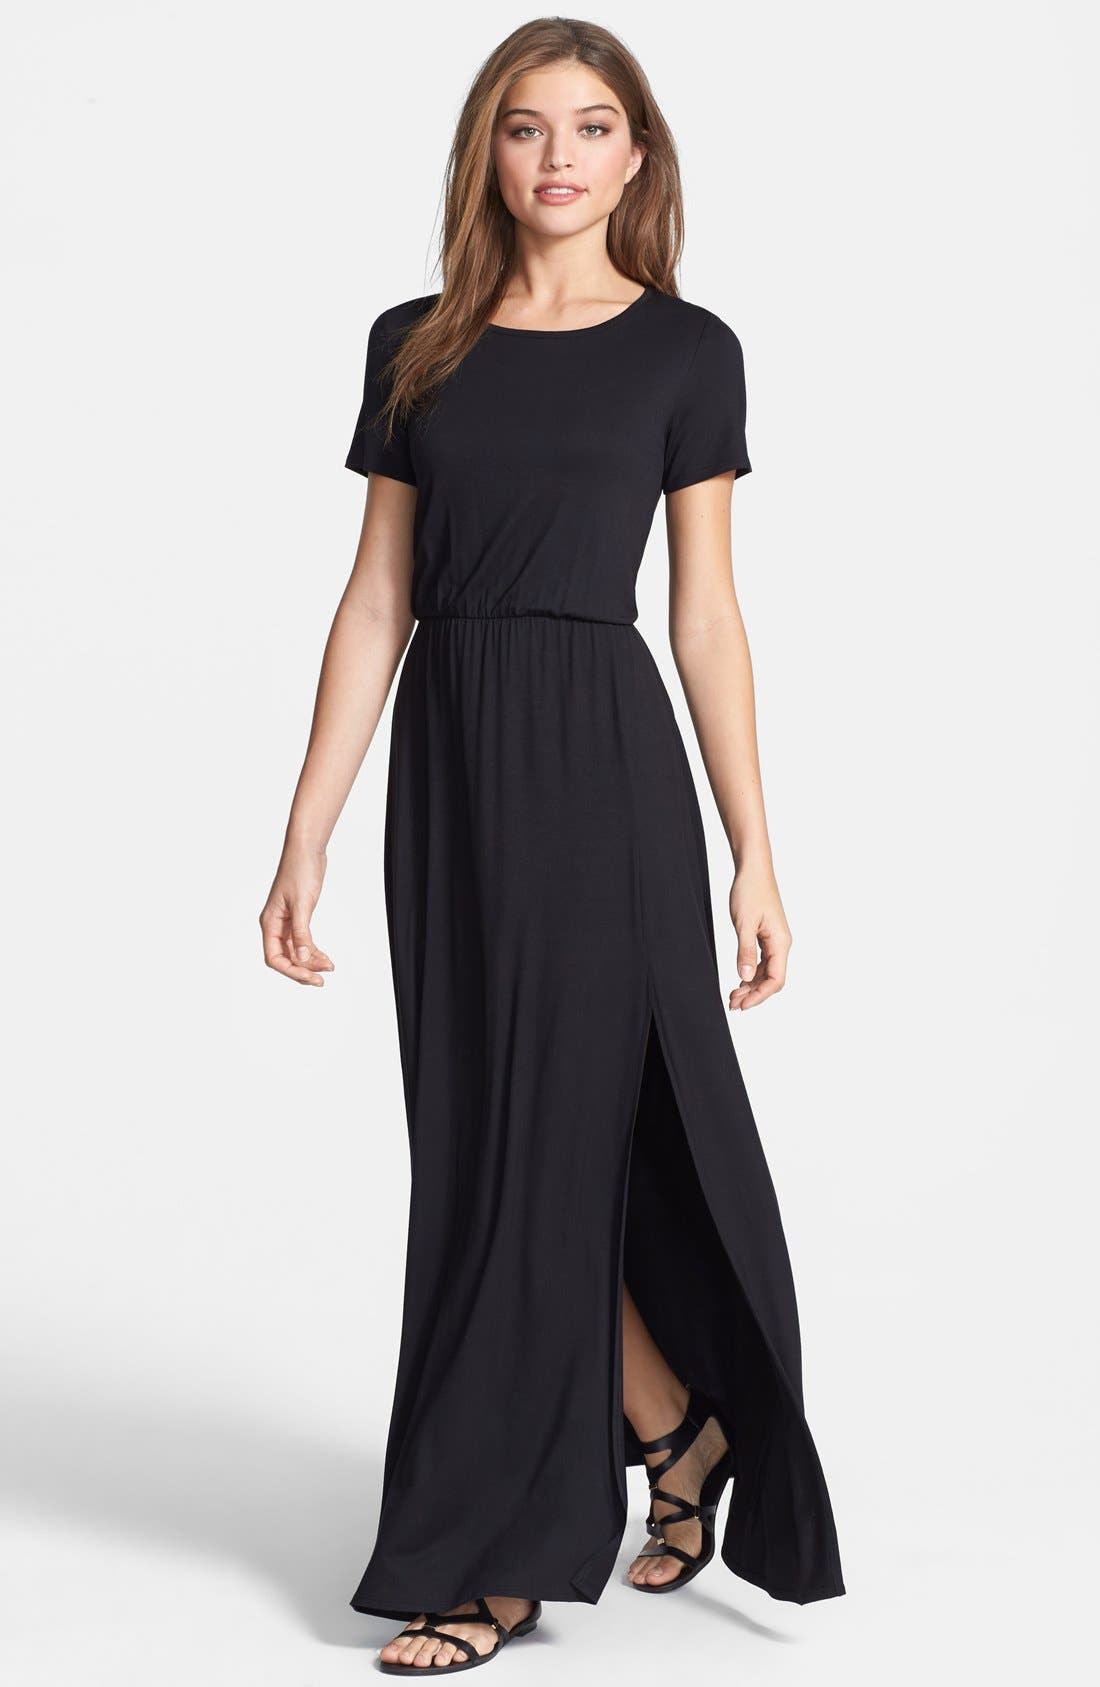 Alternate Image 1 Selected - Loveappella Cinch Waist Stretch Knit Maxi Dress